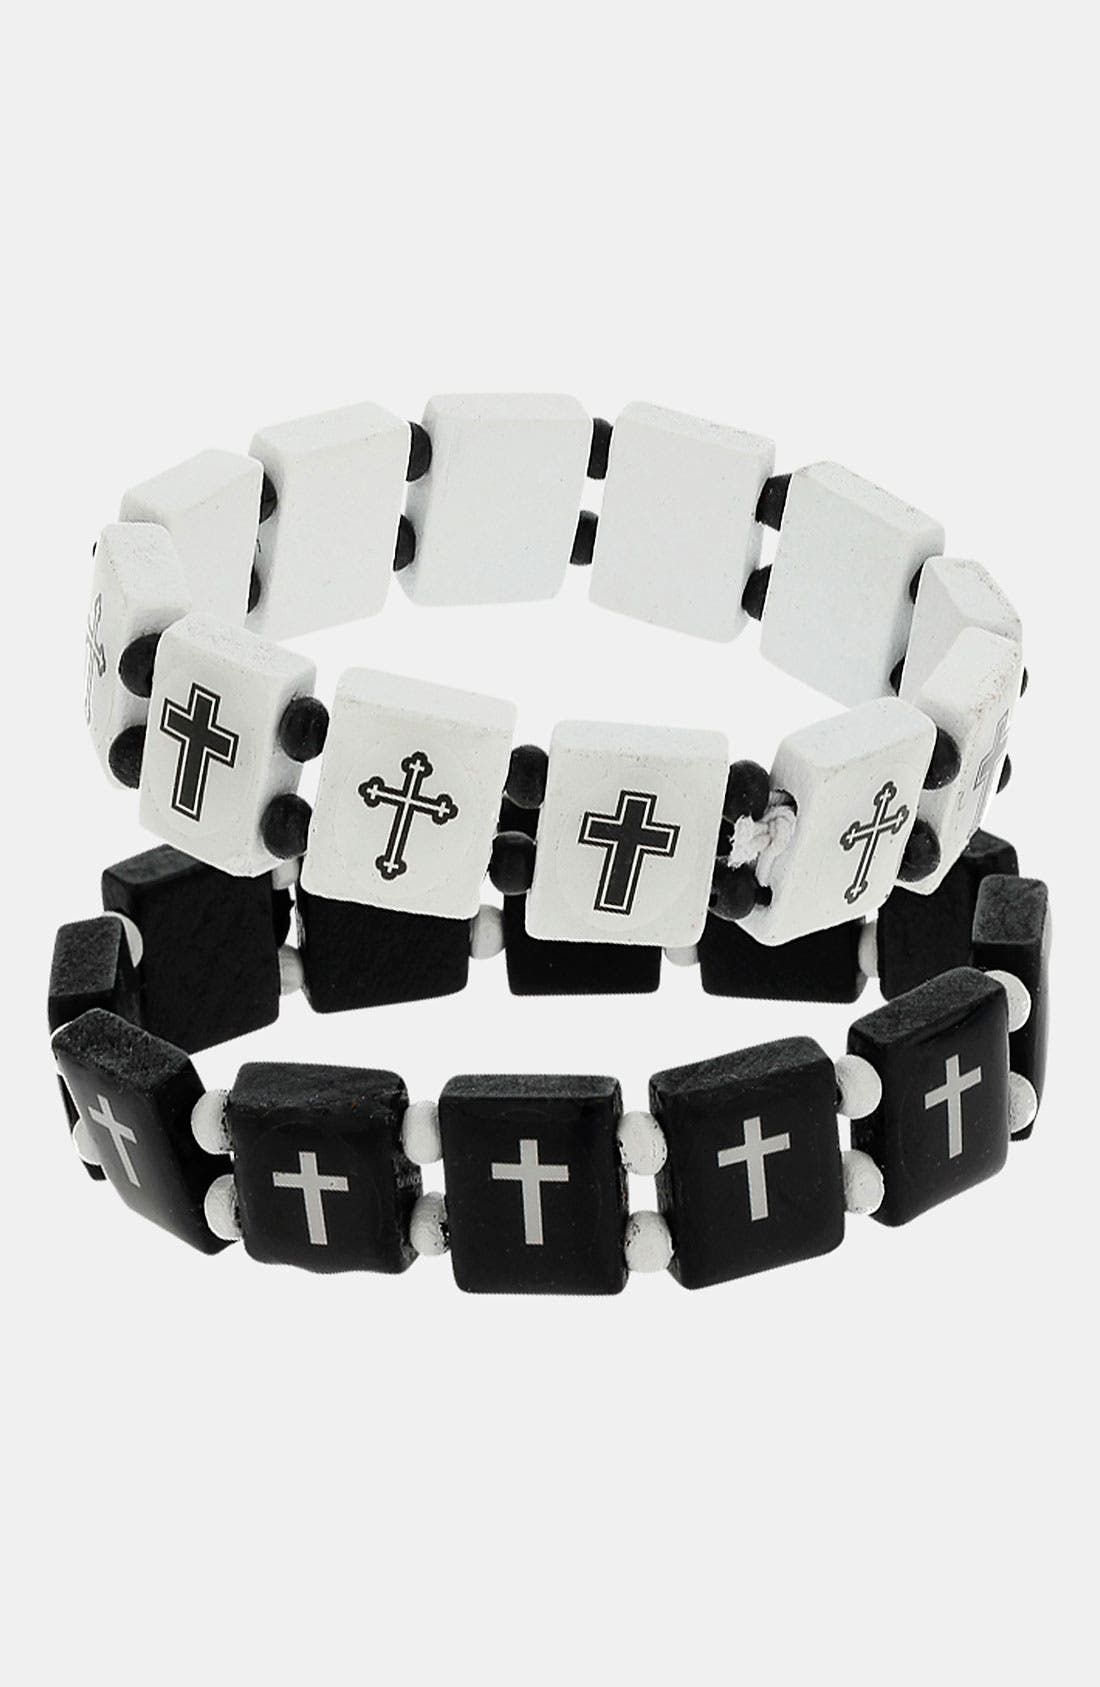 Alternate Image 1 Selected - Topman 'Cross Picture' Beaded Stretch Bracelets (Set of 2)